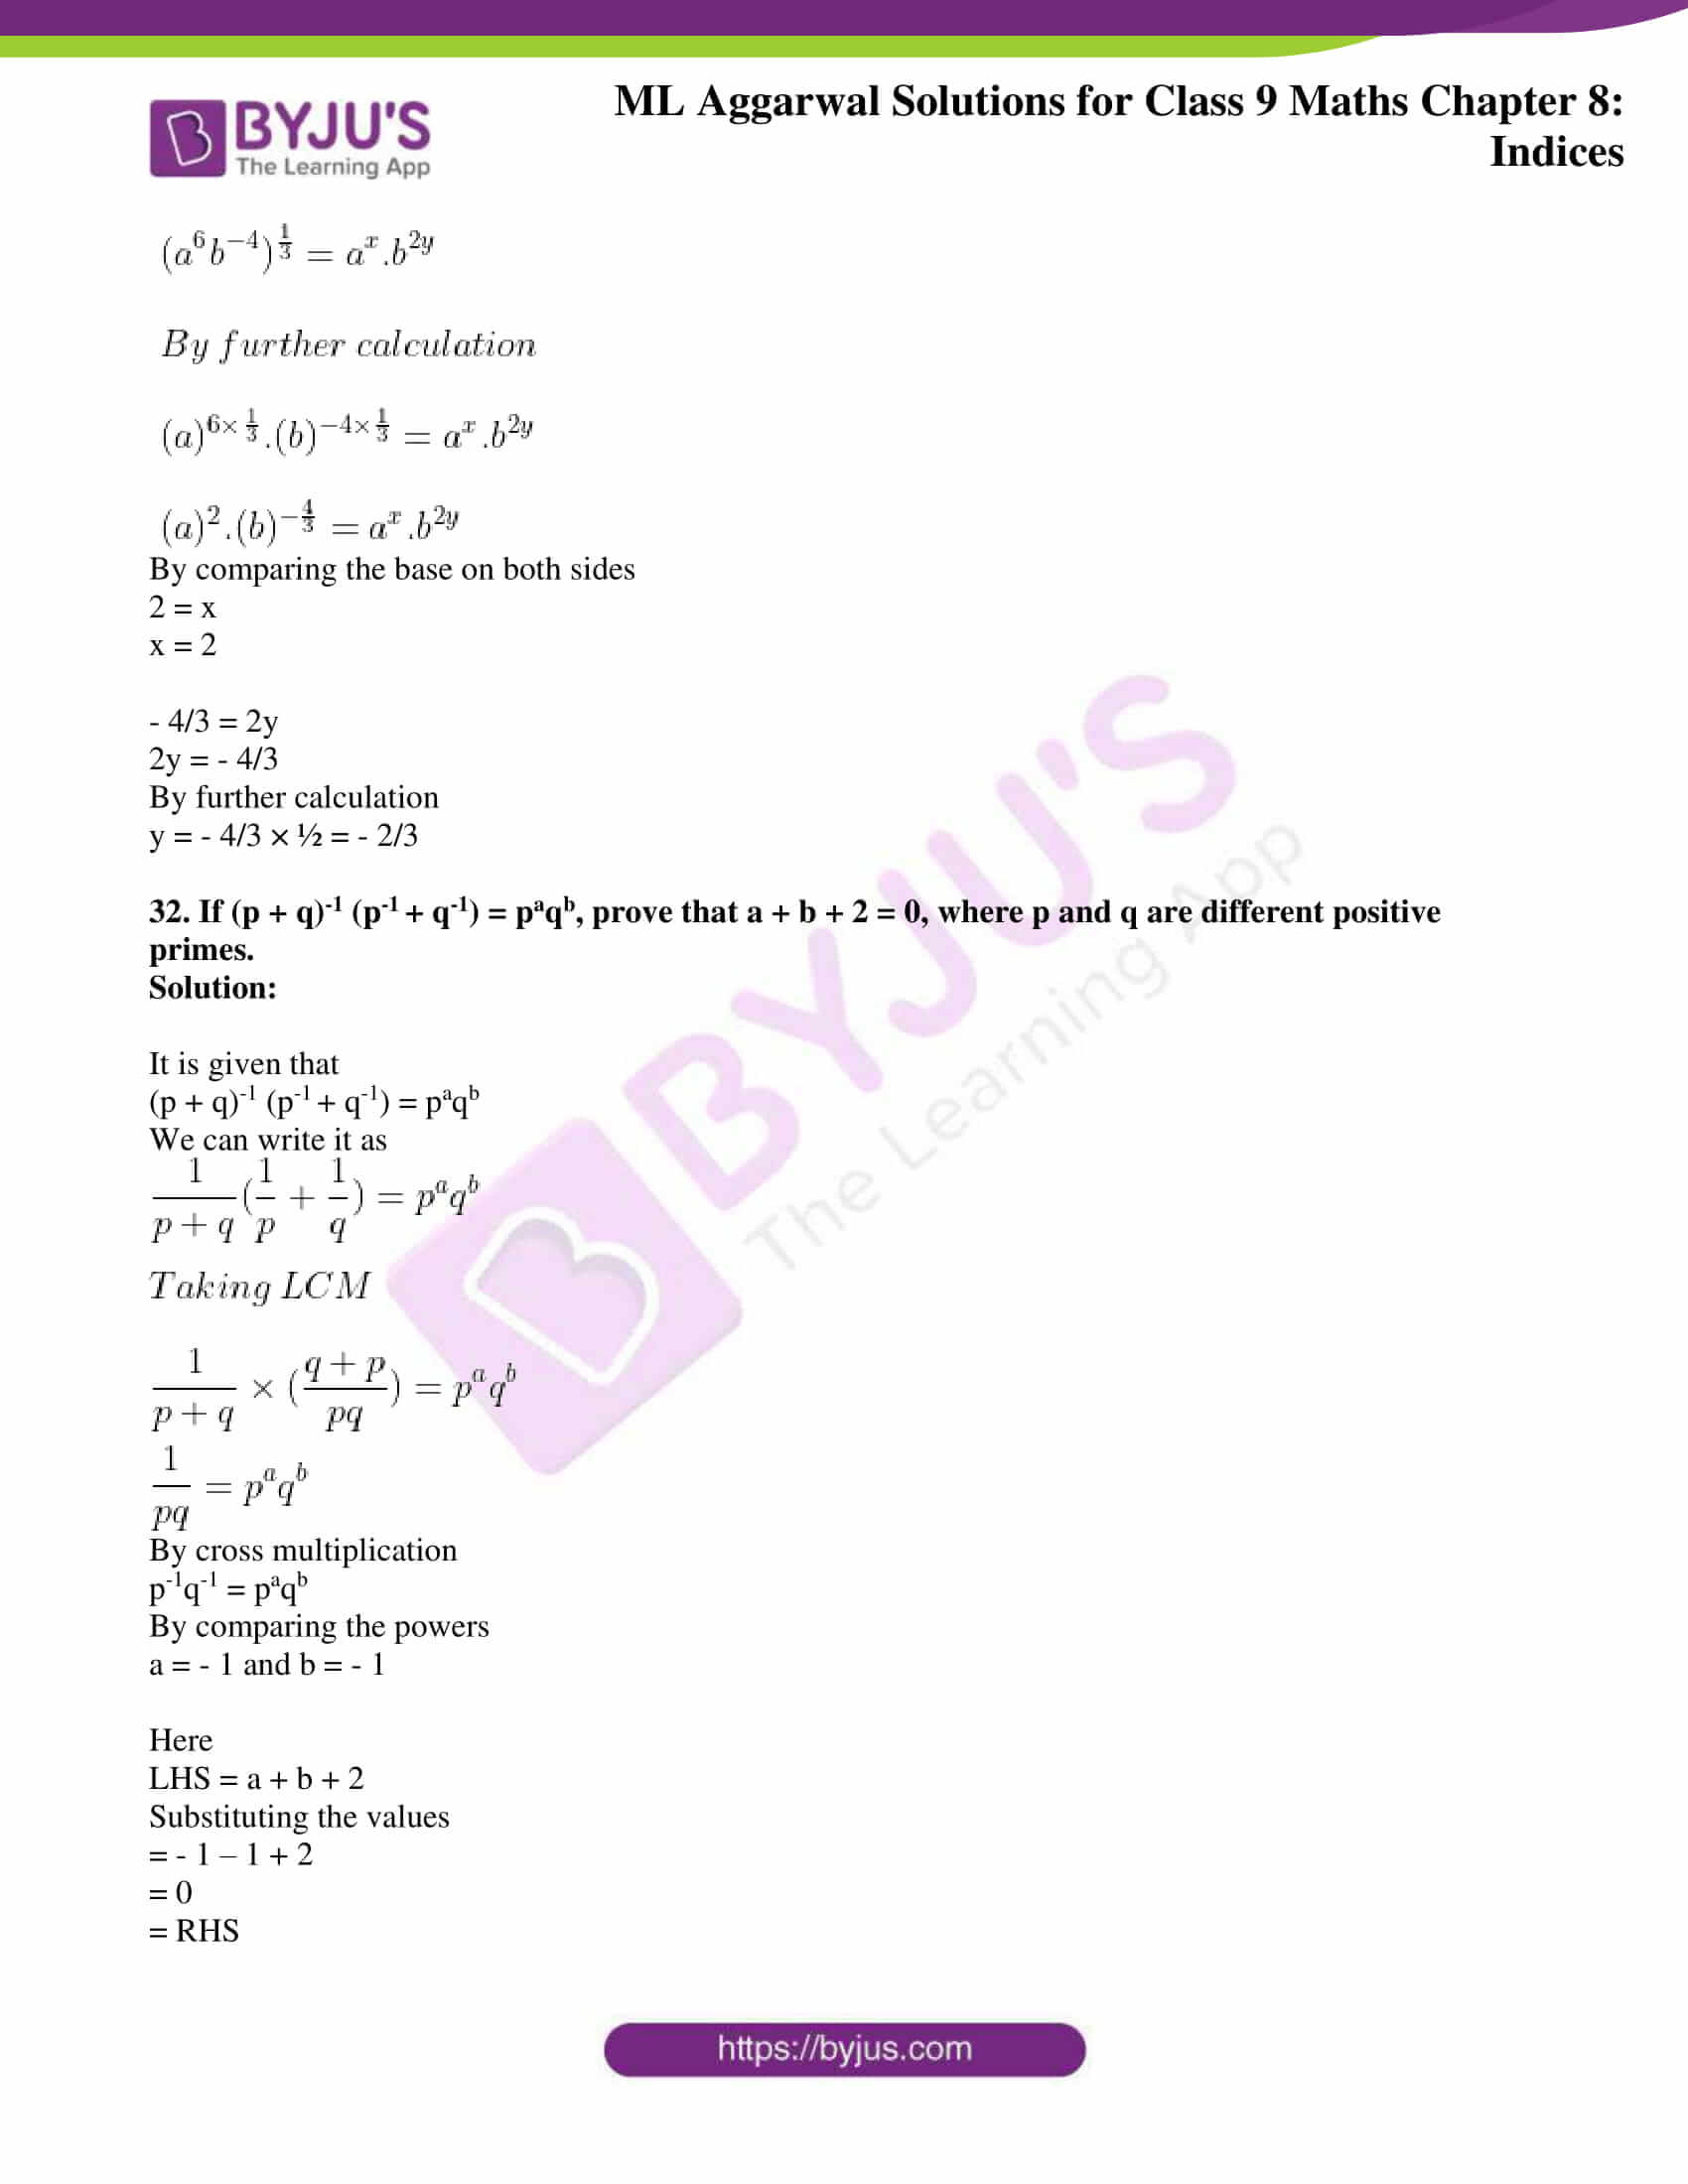 ml aggarwal solutions for class 9 maths chapter 8 33